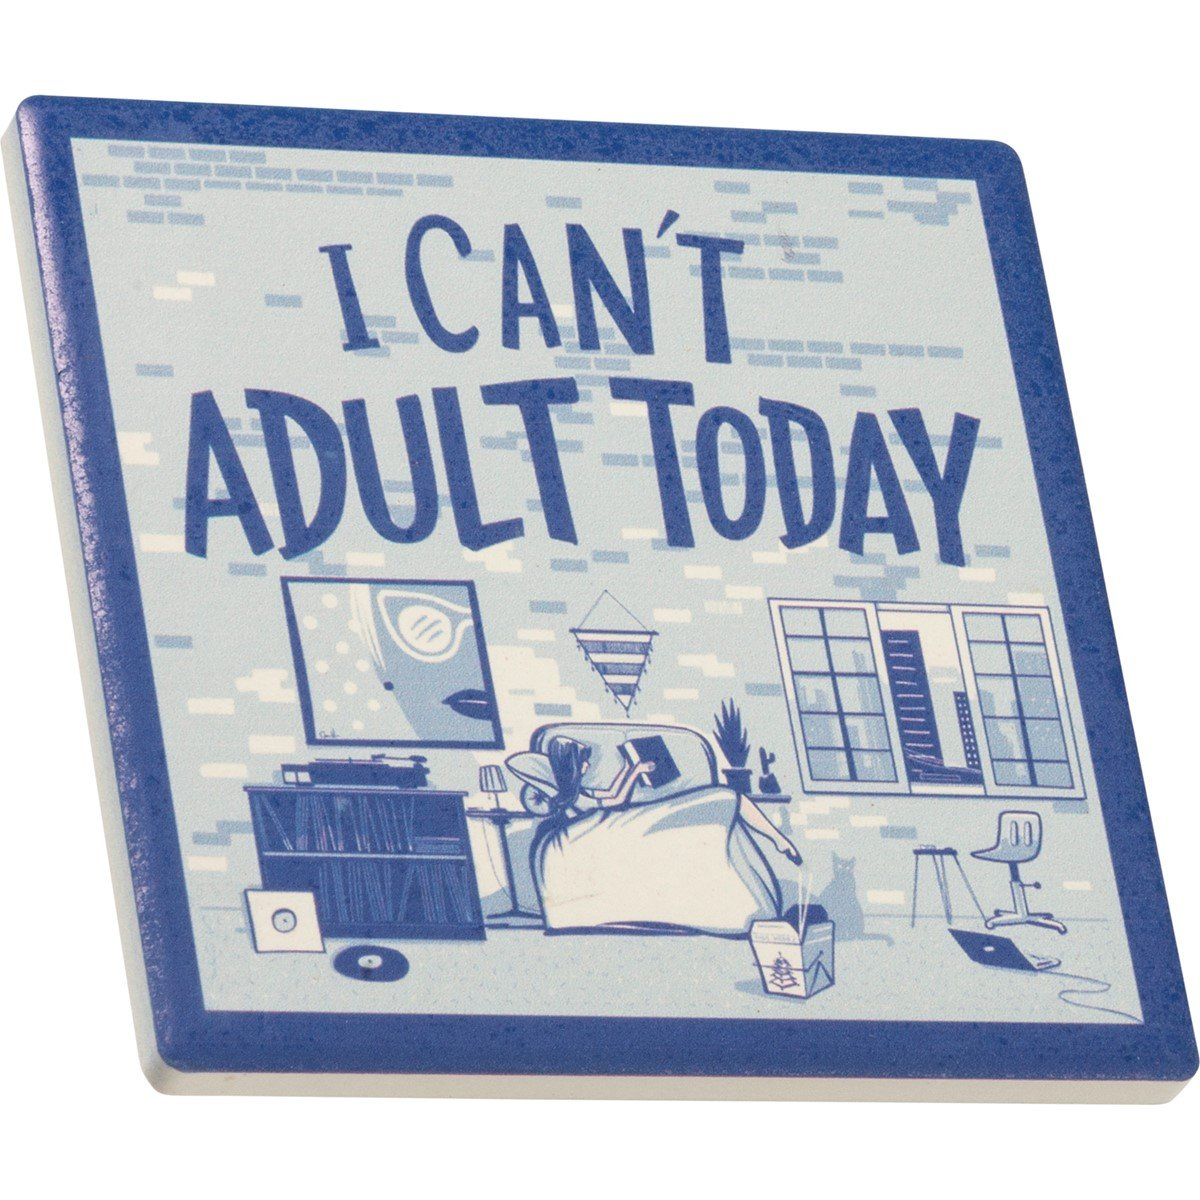 "Coaster - I Can't Adult Today - 4"" x 4"" x 0.25"" - Stone, Cork"